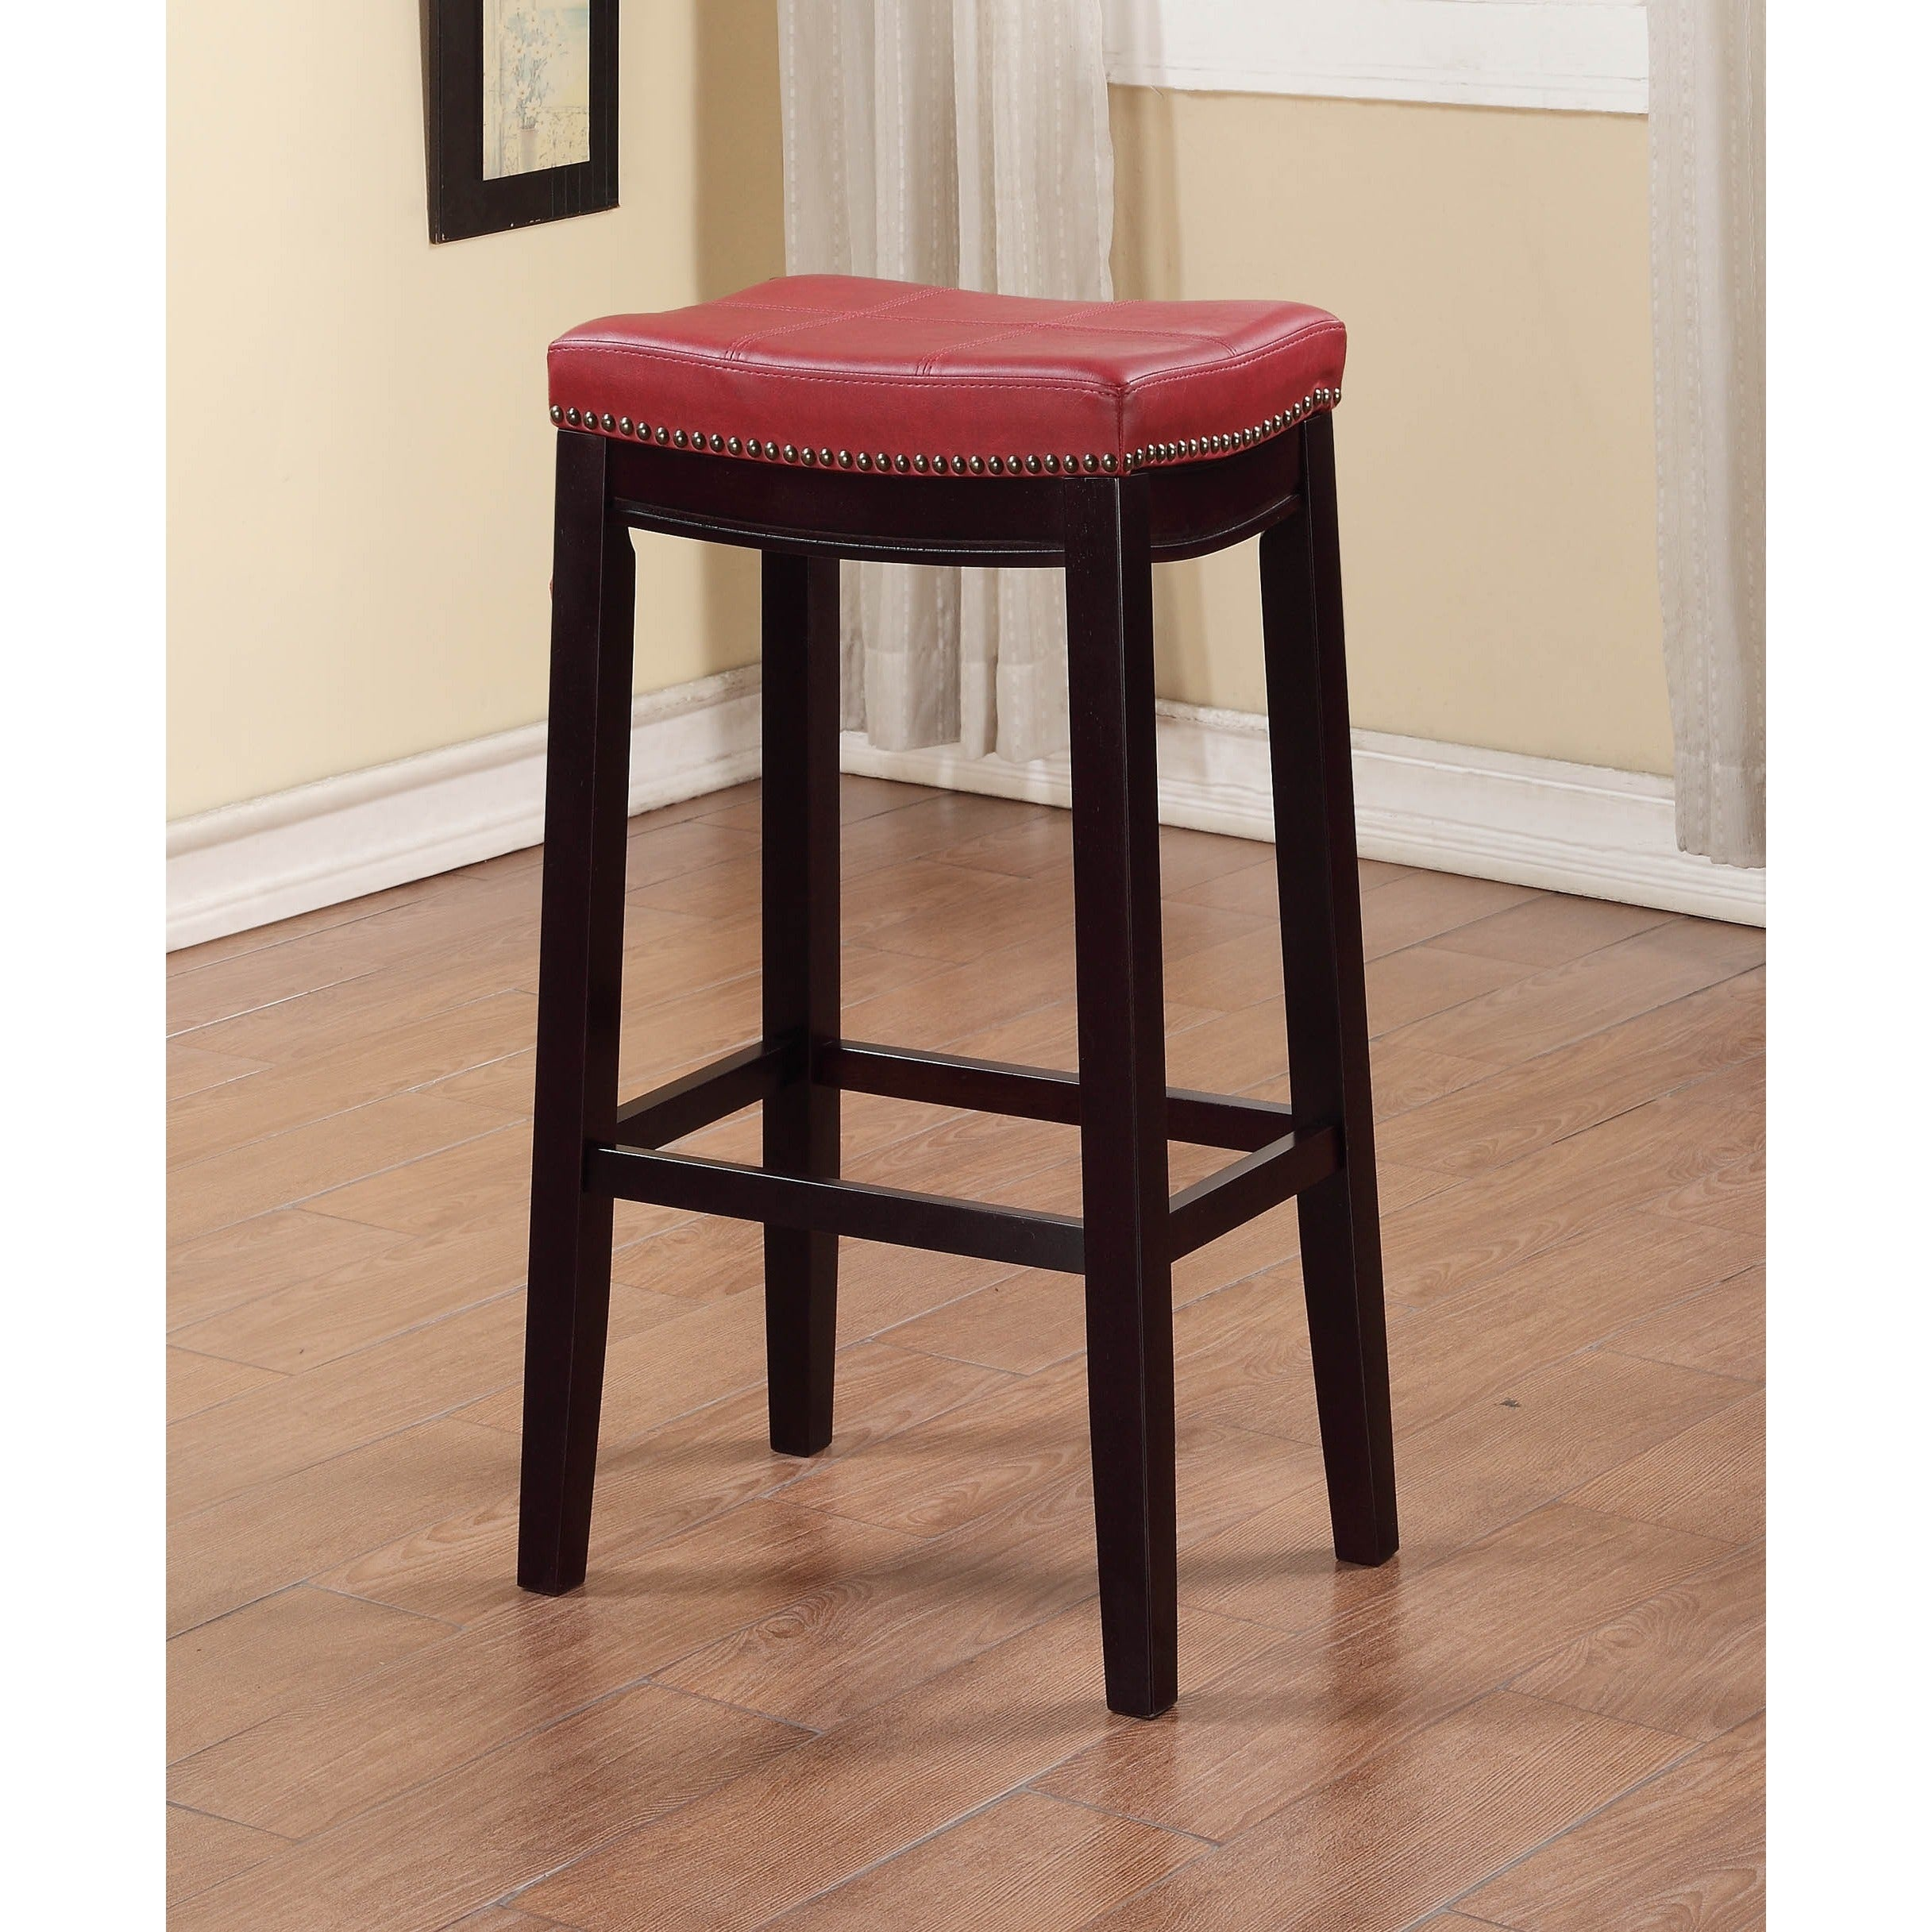 Fabulous Linon Backless Bar Stool With Red Vinyl Seat Unemploymentrelief Wooden Chair Designs For Living Room Unemploymentrelieforg